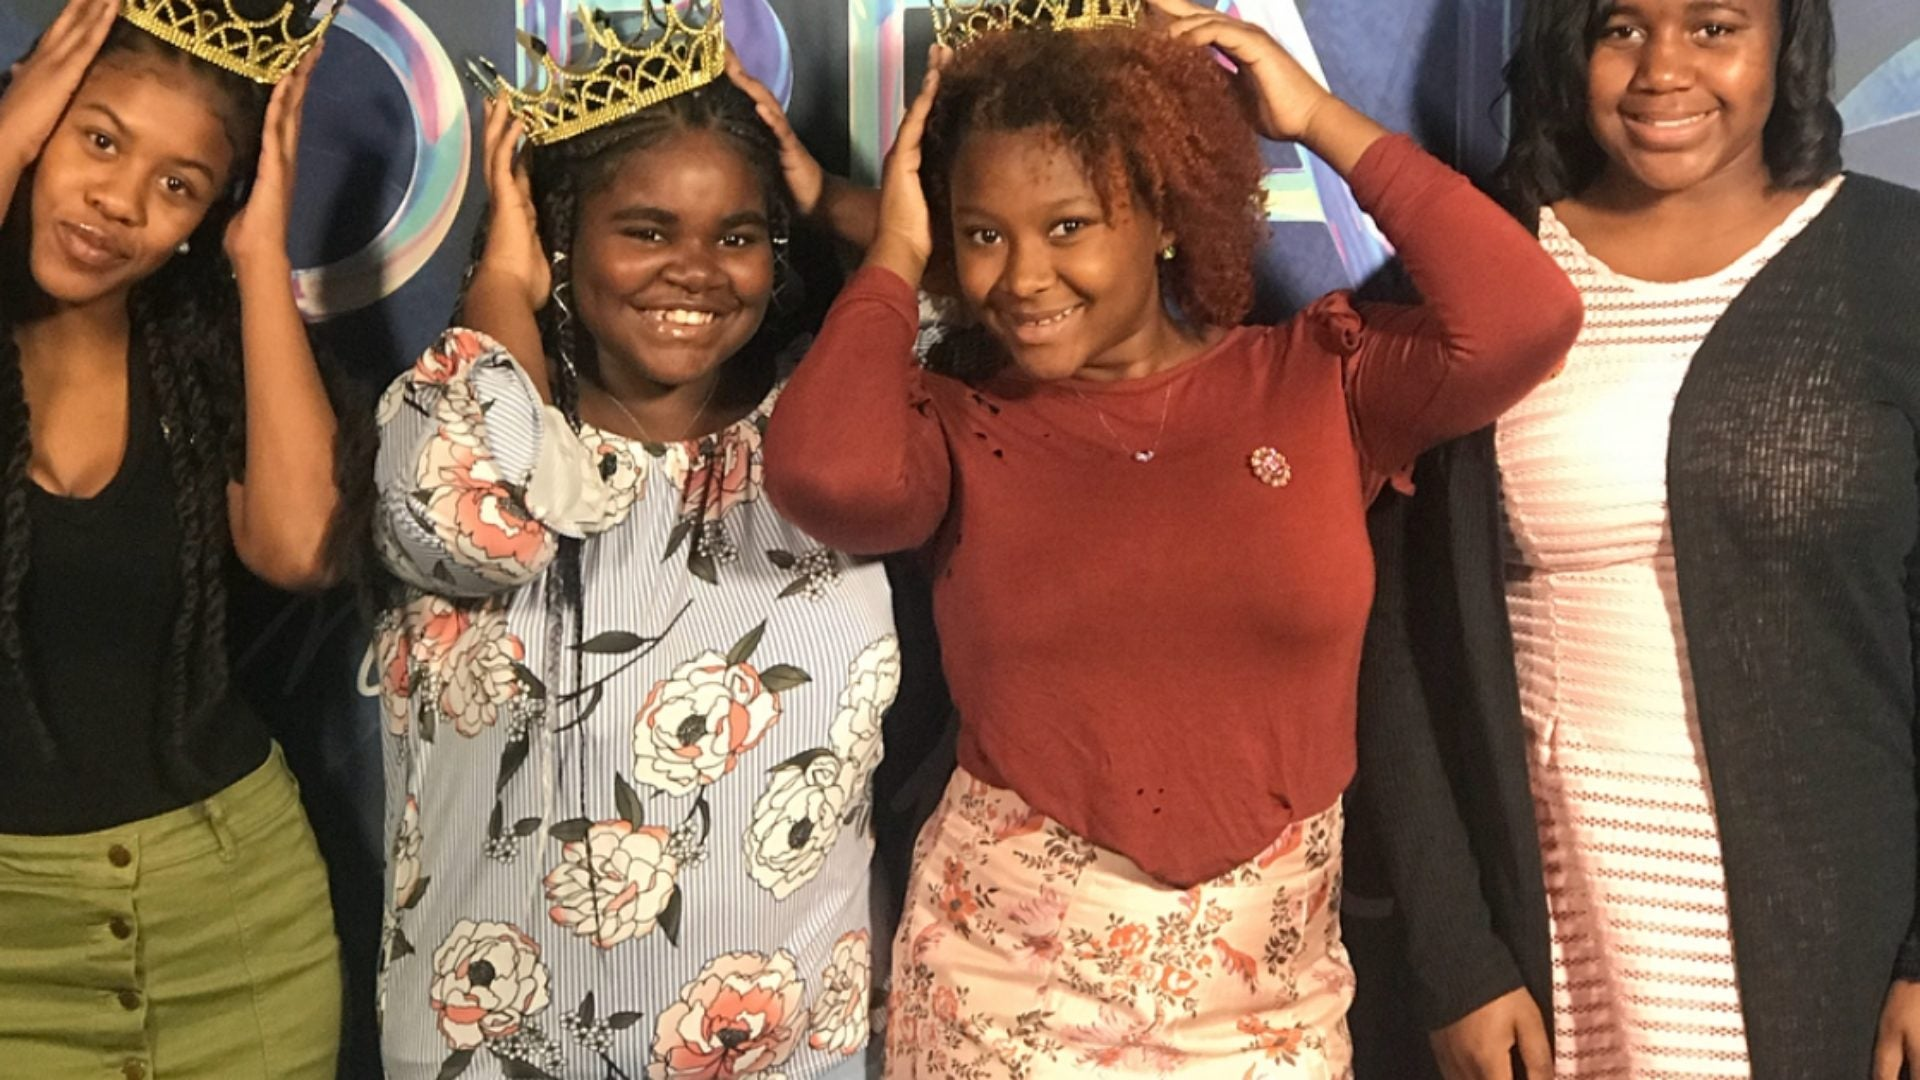 This Viral Campaign Had Black Queens Of All Ages Rocking Their Crowns Proudly At ESSENCE Fest…See The Pics!